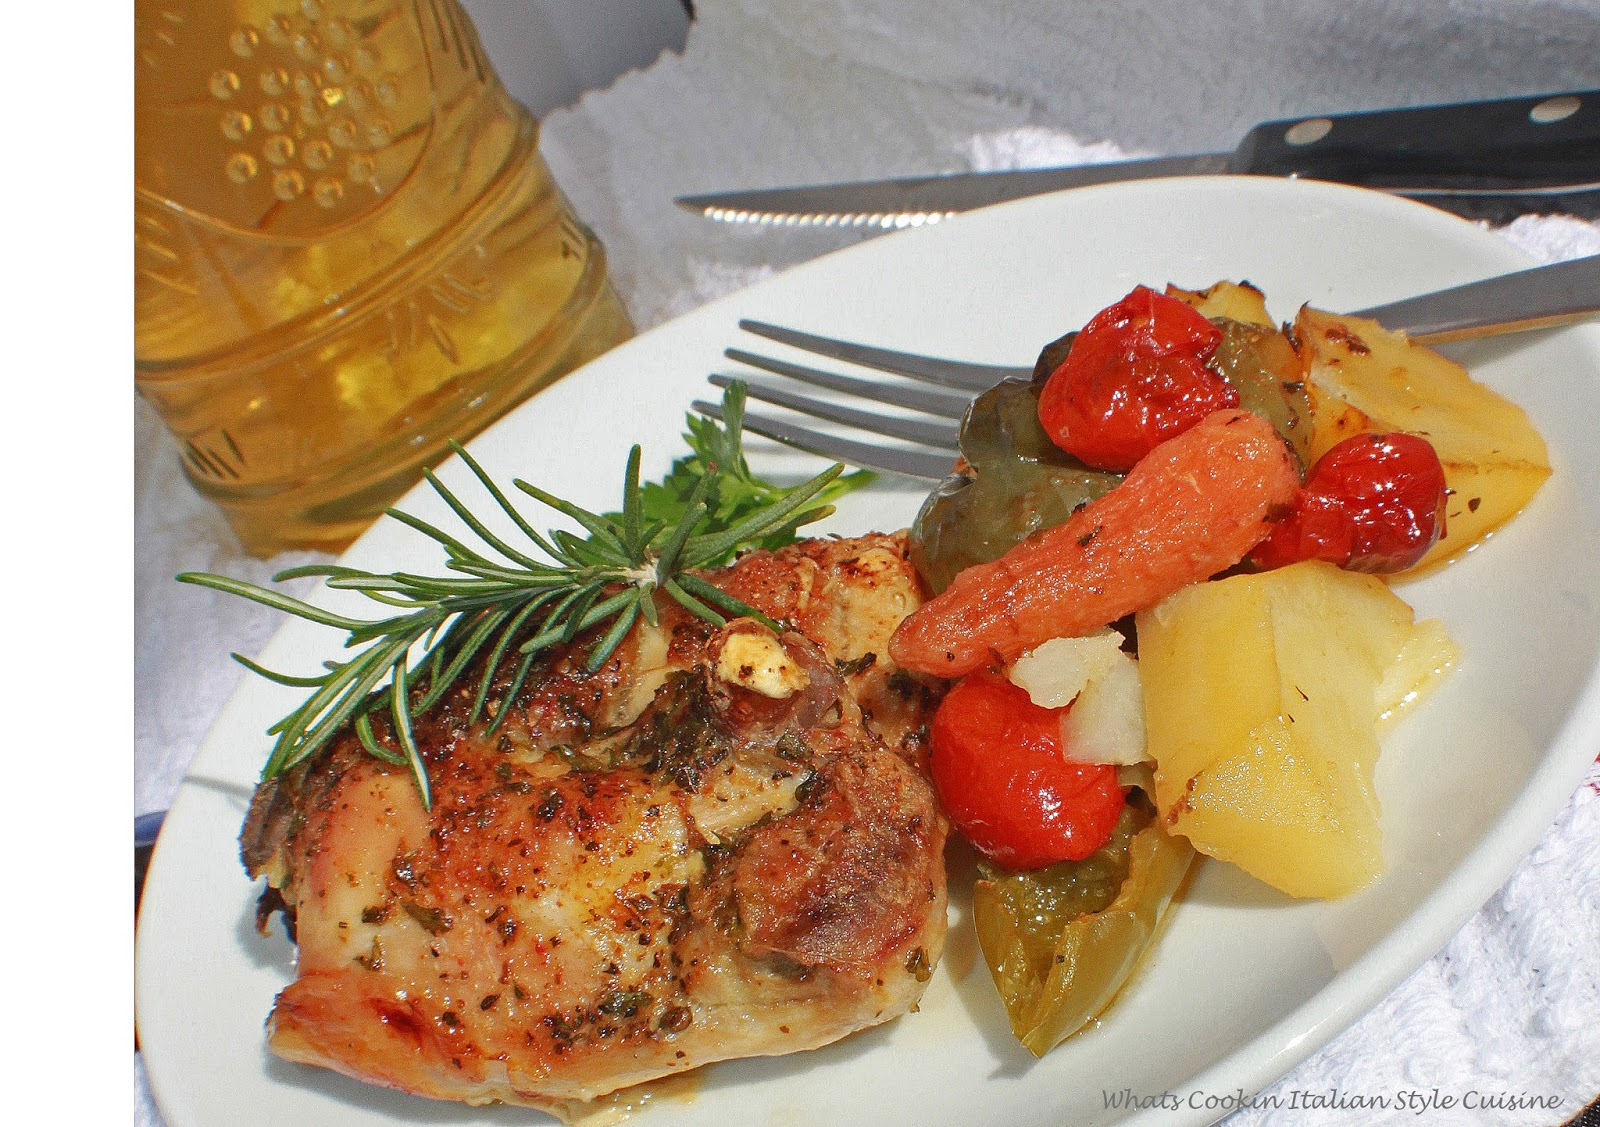 Italian chicken with potatoes, carrots, peppers and tomatoes baked in the oven until crispy